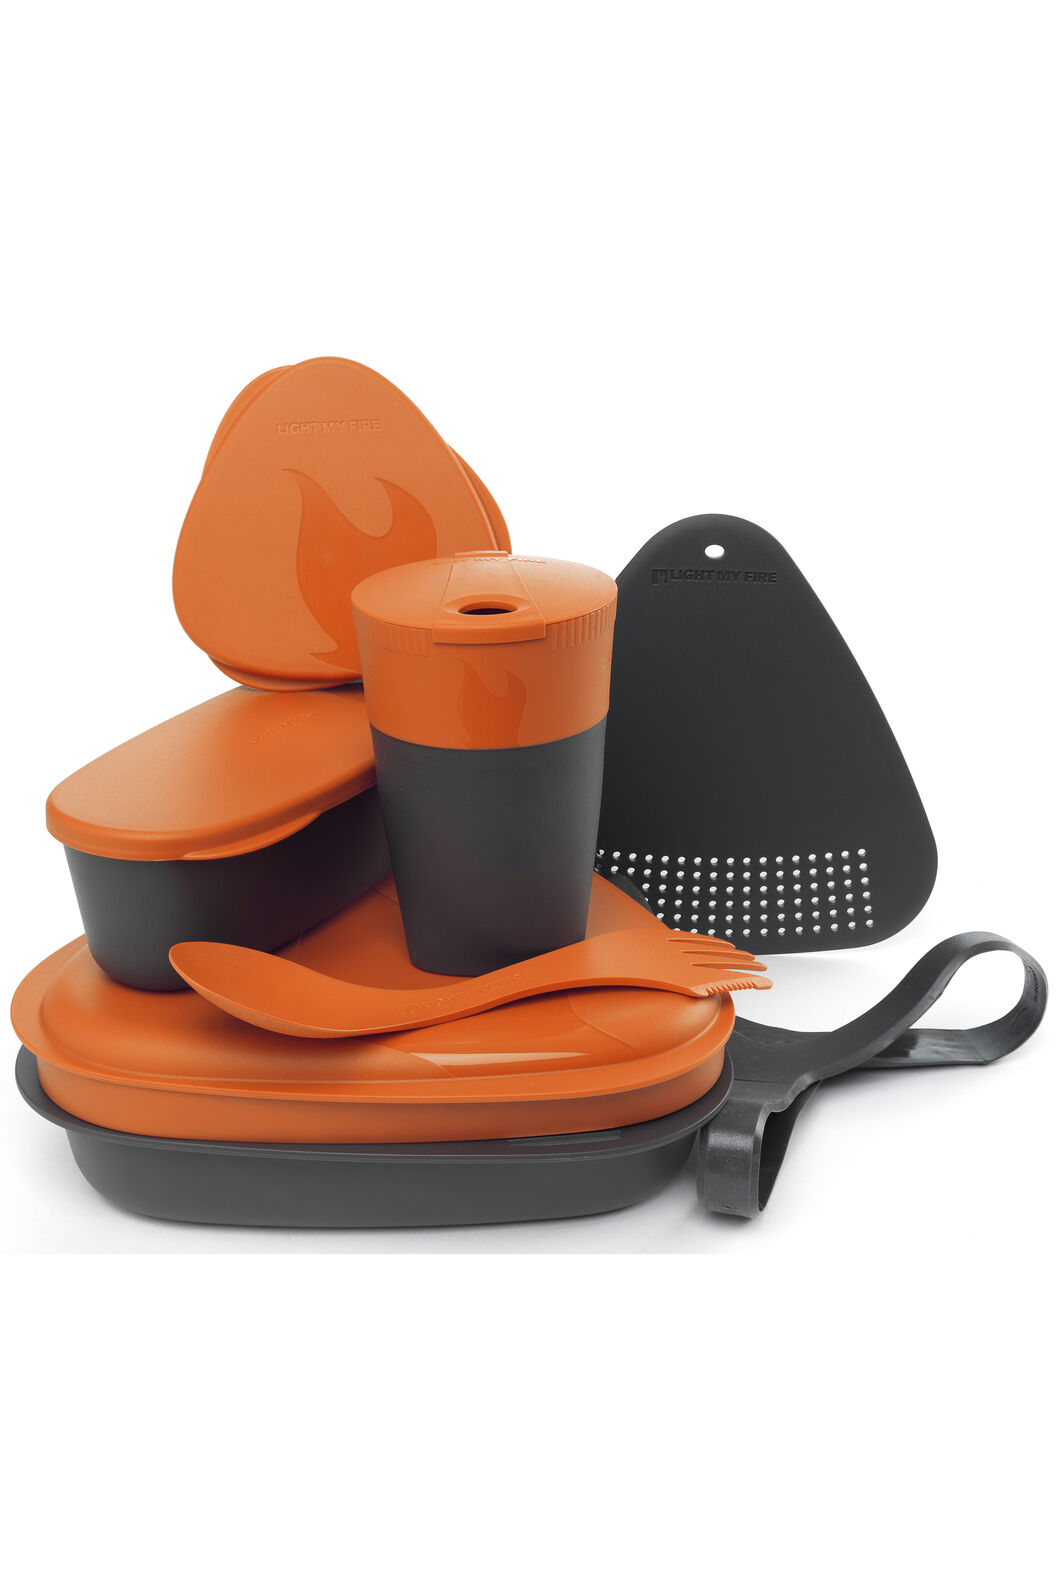 Light My Fire MealKit 2.0™, Orange, hi-res